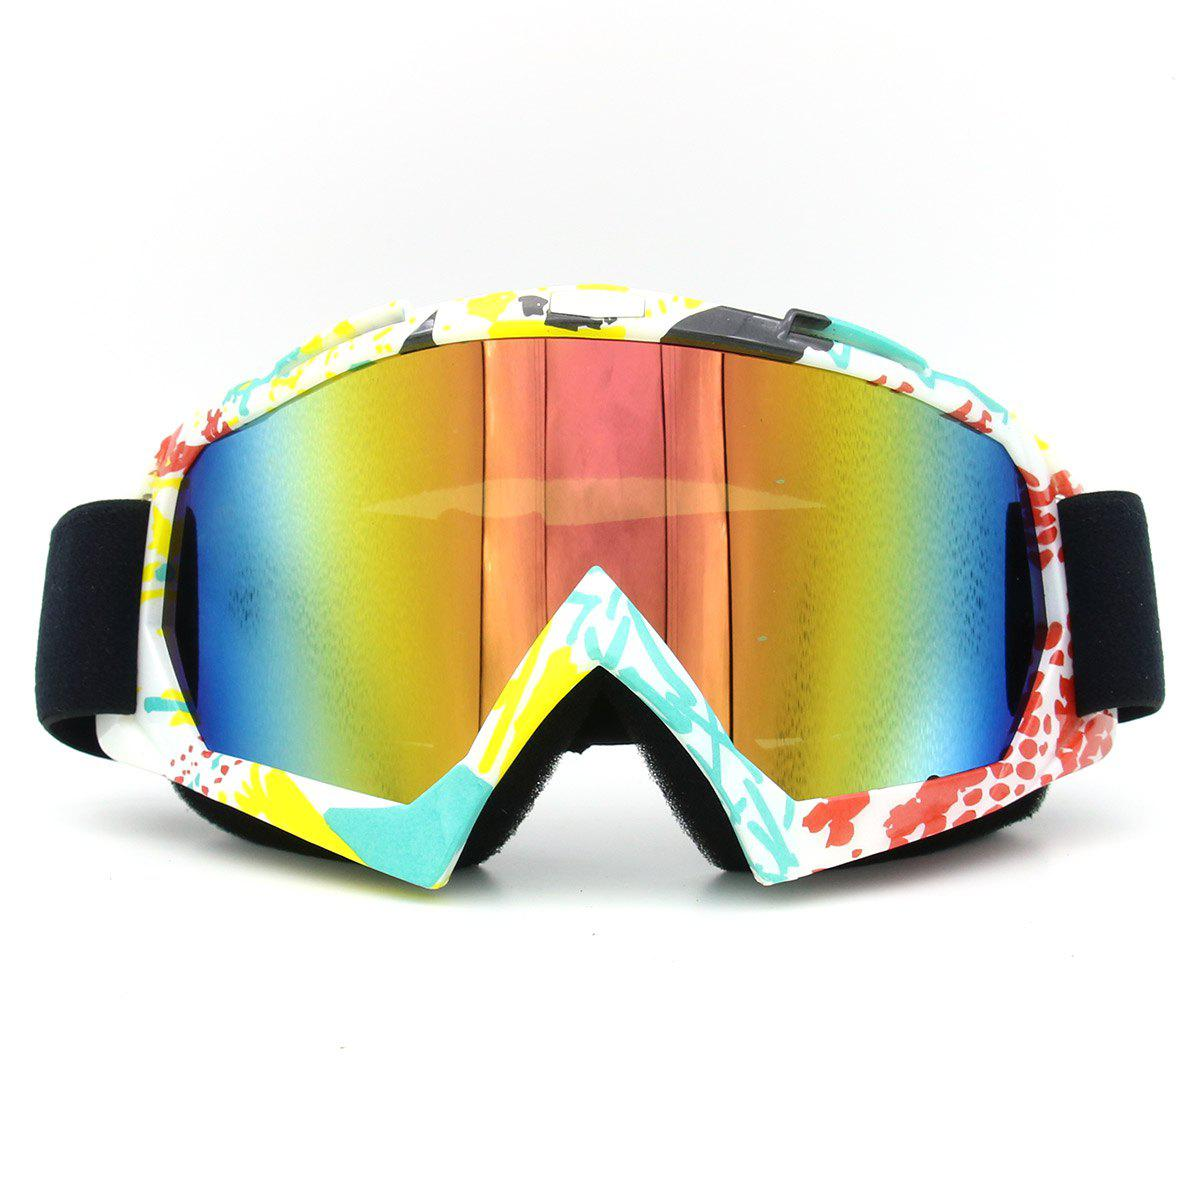 Dustproof UV Protection Off Road Riding GogglesHOME<br><br>Color: COFFEE AND YELLOW; Gender: Unisex; Type: Cycling Glasses; Style: Fashion; Feature: Anti-UV,Durable,Dustproof,Windproof; Pattern Type: Others; Material: Plastic; Weight: 0.2880kg; Package Contents: 1 x Goggles;